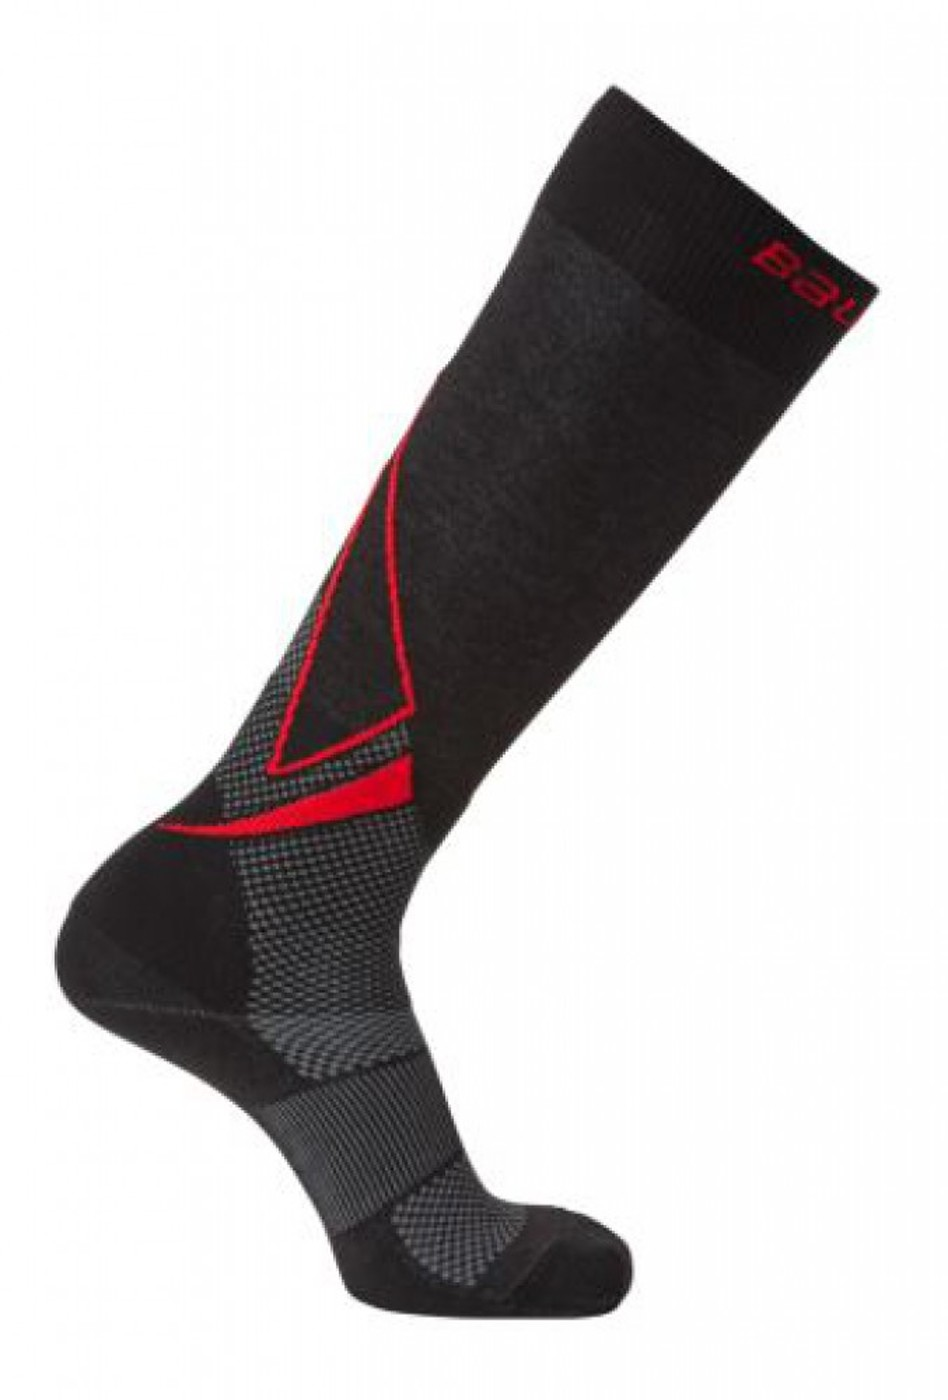 BAUER S19 PRO TALL SKATE SOCK